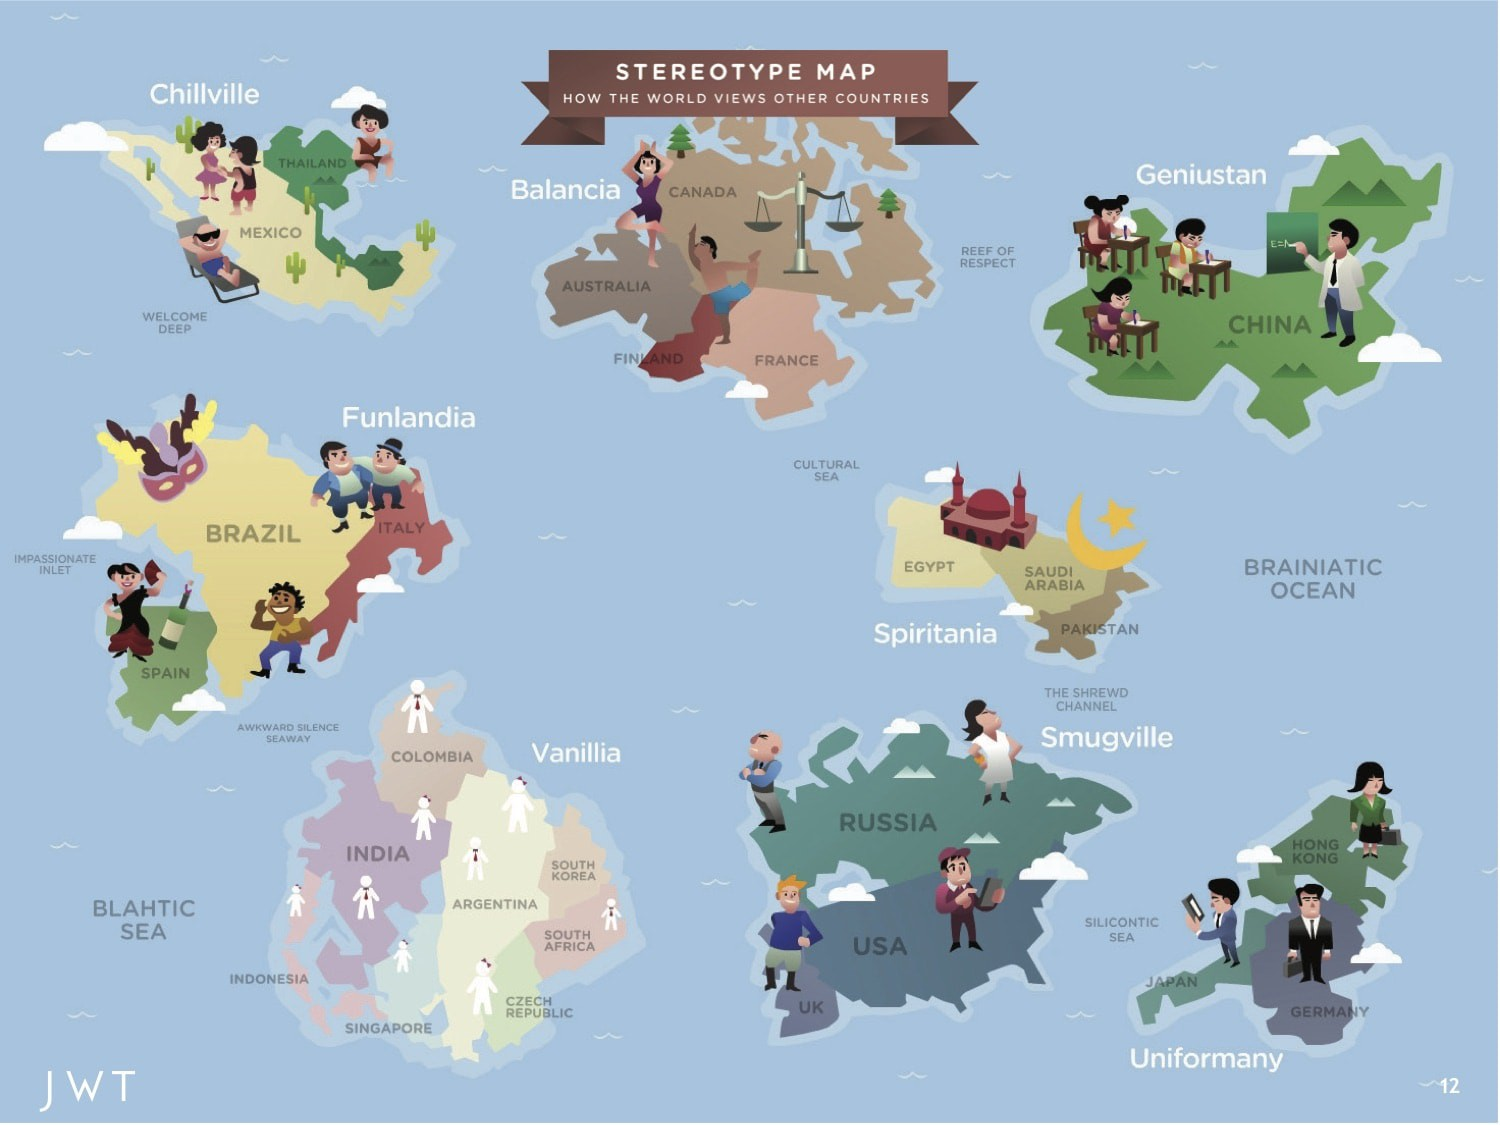 Personality traits map: Find out which country suits you the ... on map nevada, map of vegas strip, map of seattle, map of pahrump, map of grand canyon, map of united states, map of laughlin hotels, map of vegas casinos, map of california, map of new york, map of vegas hotels, map of the strip, map of key west, map of summerlin, map of lake mead, map of san francisco, map of washington, map of alaska, map of san diego, map of arizona,